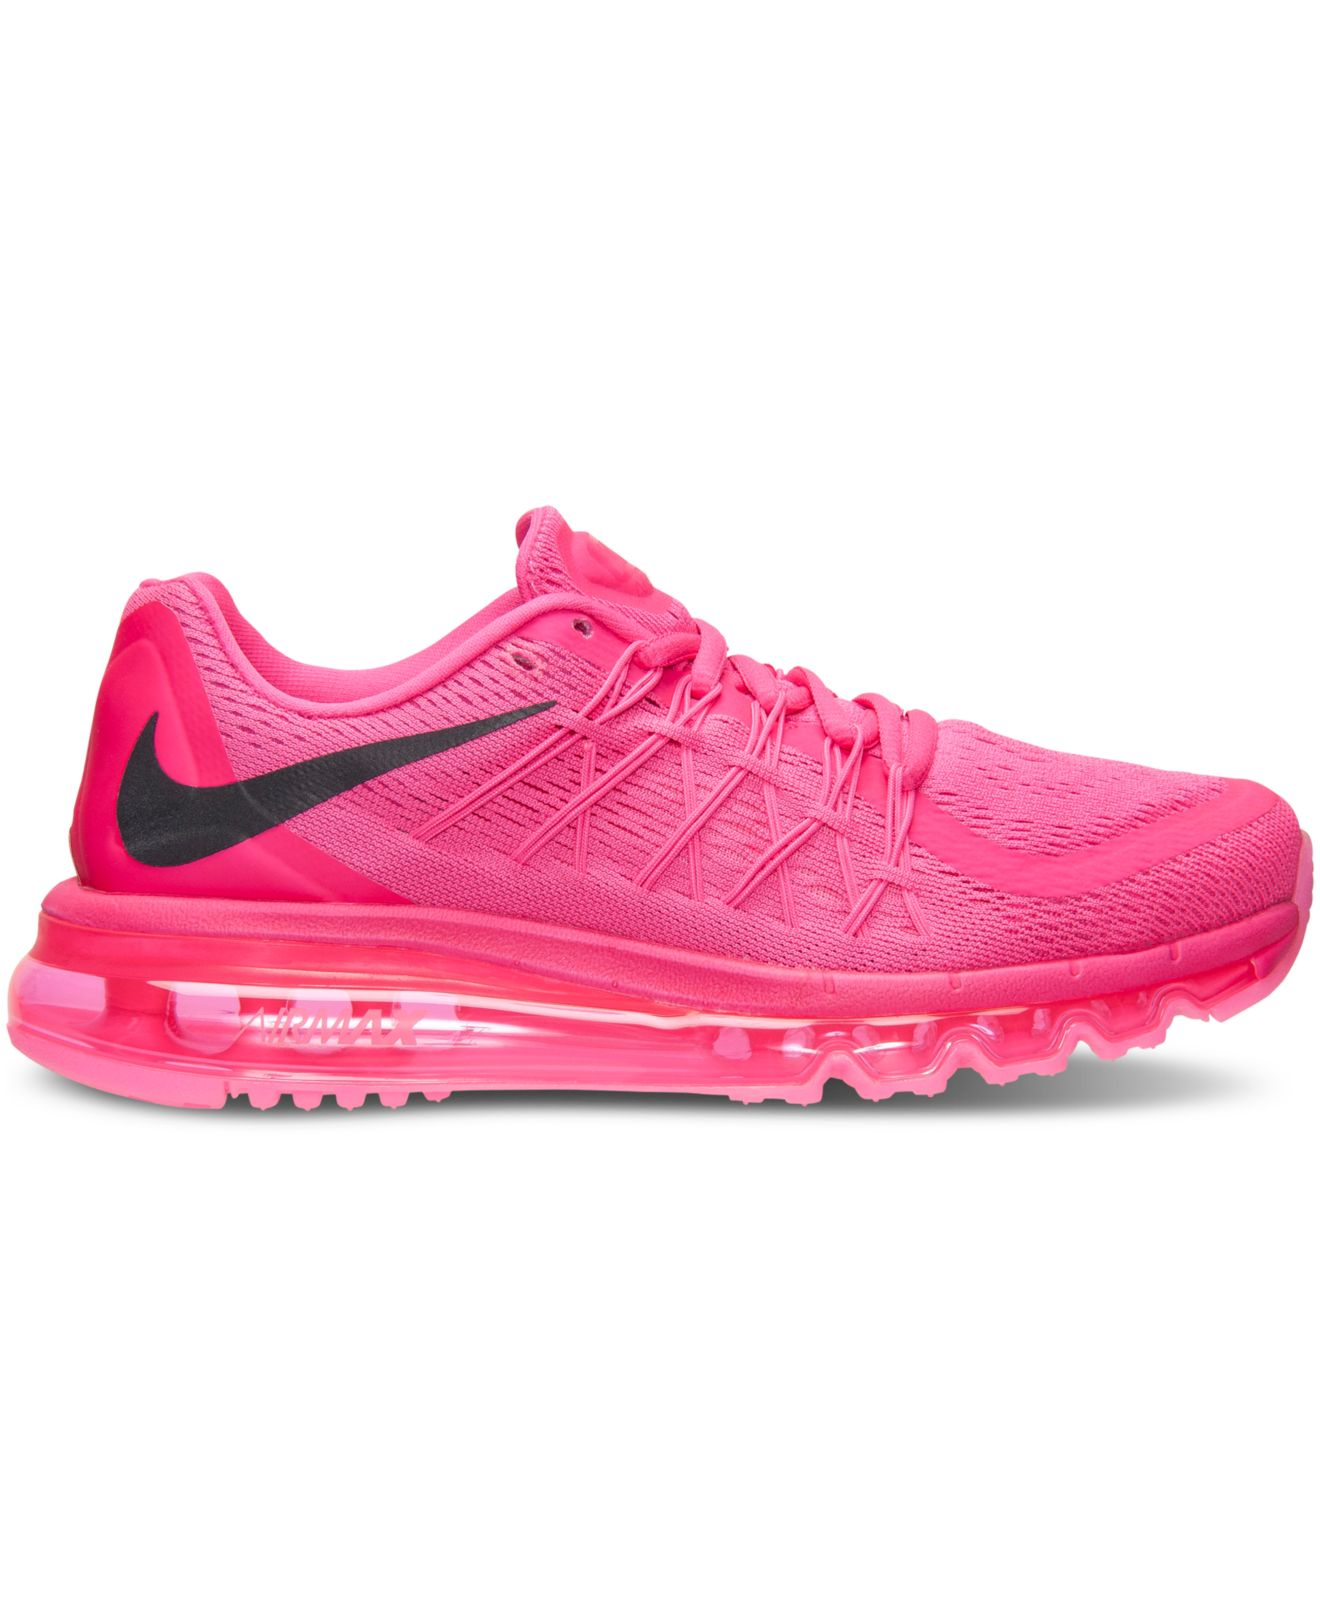 cheap for discount 958cd f8893 ... wholesale running shoes finish line gallery. previously sold at macys womens  nike nike air max ...